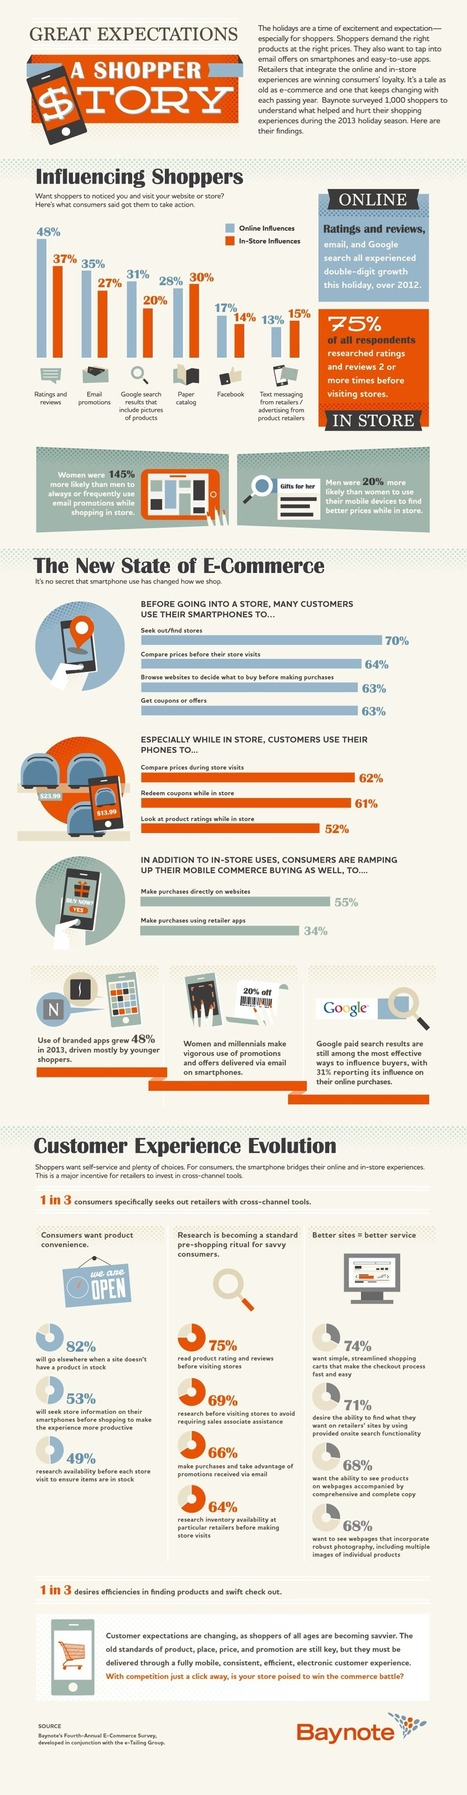 Observing 2013 Shopping Trends to Inform Your Marketing in 2014   Marketing Trends   Scoop.it